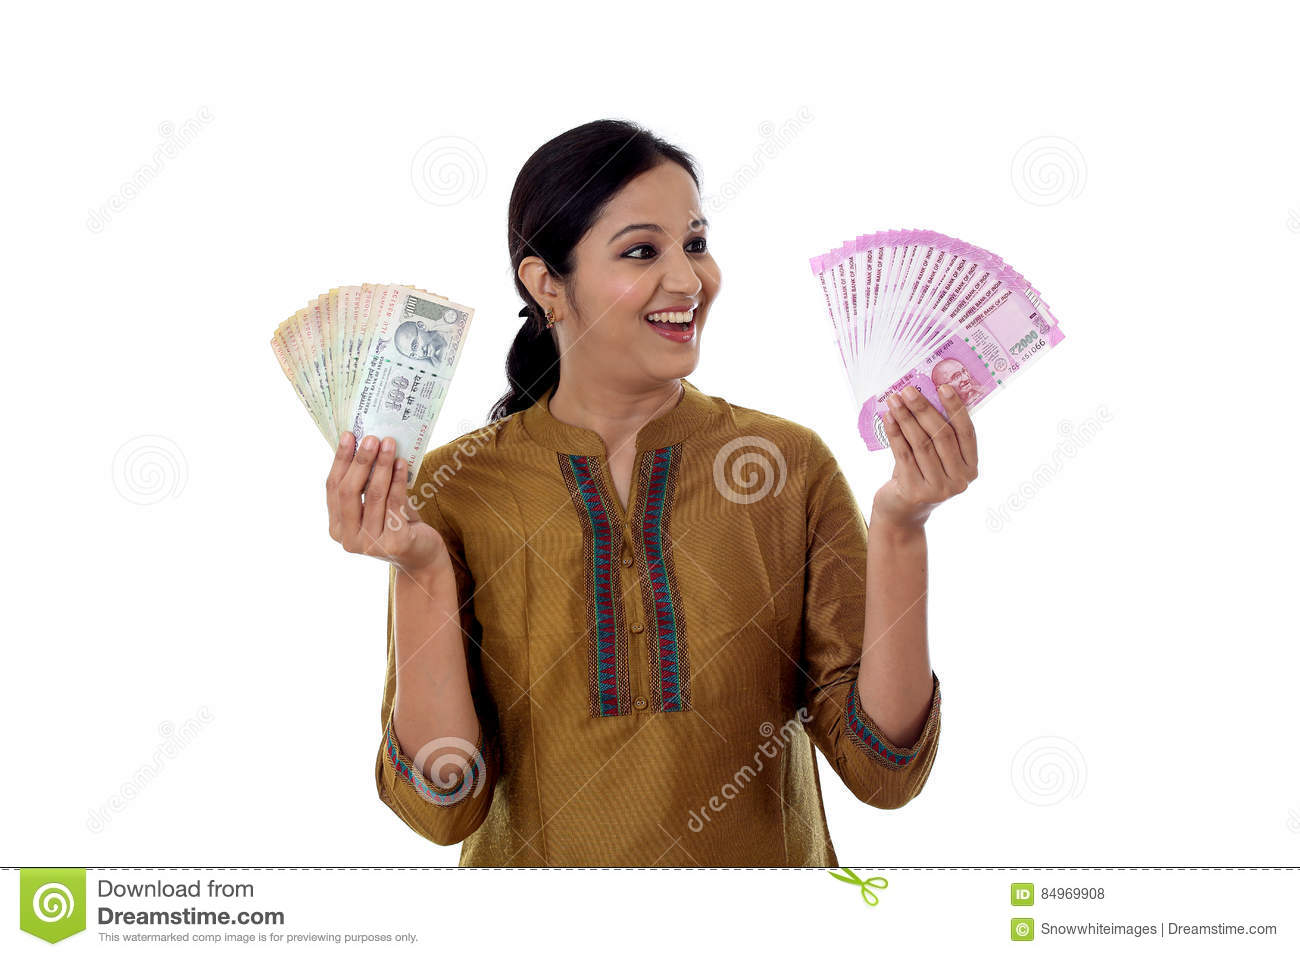 Young Indian woman holding 2000 & 100 currency notes